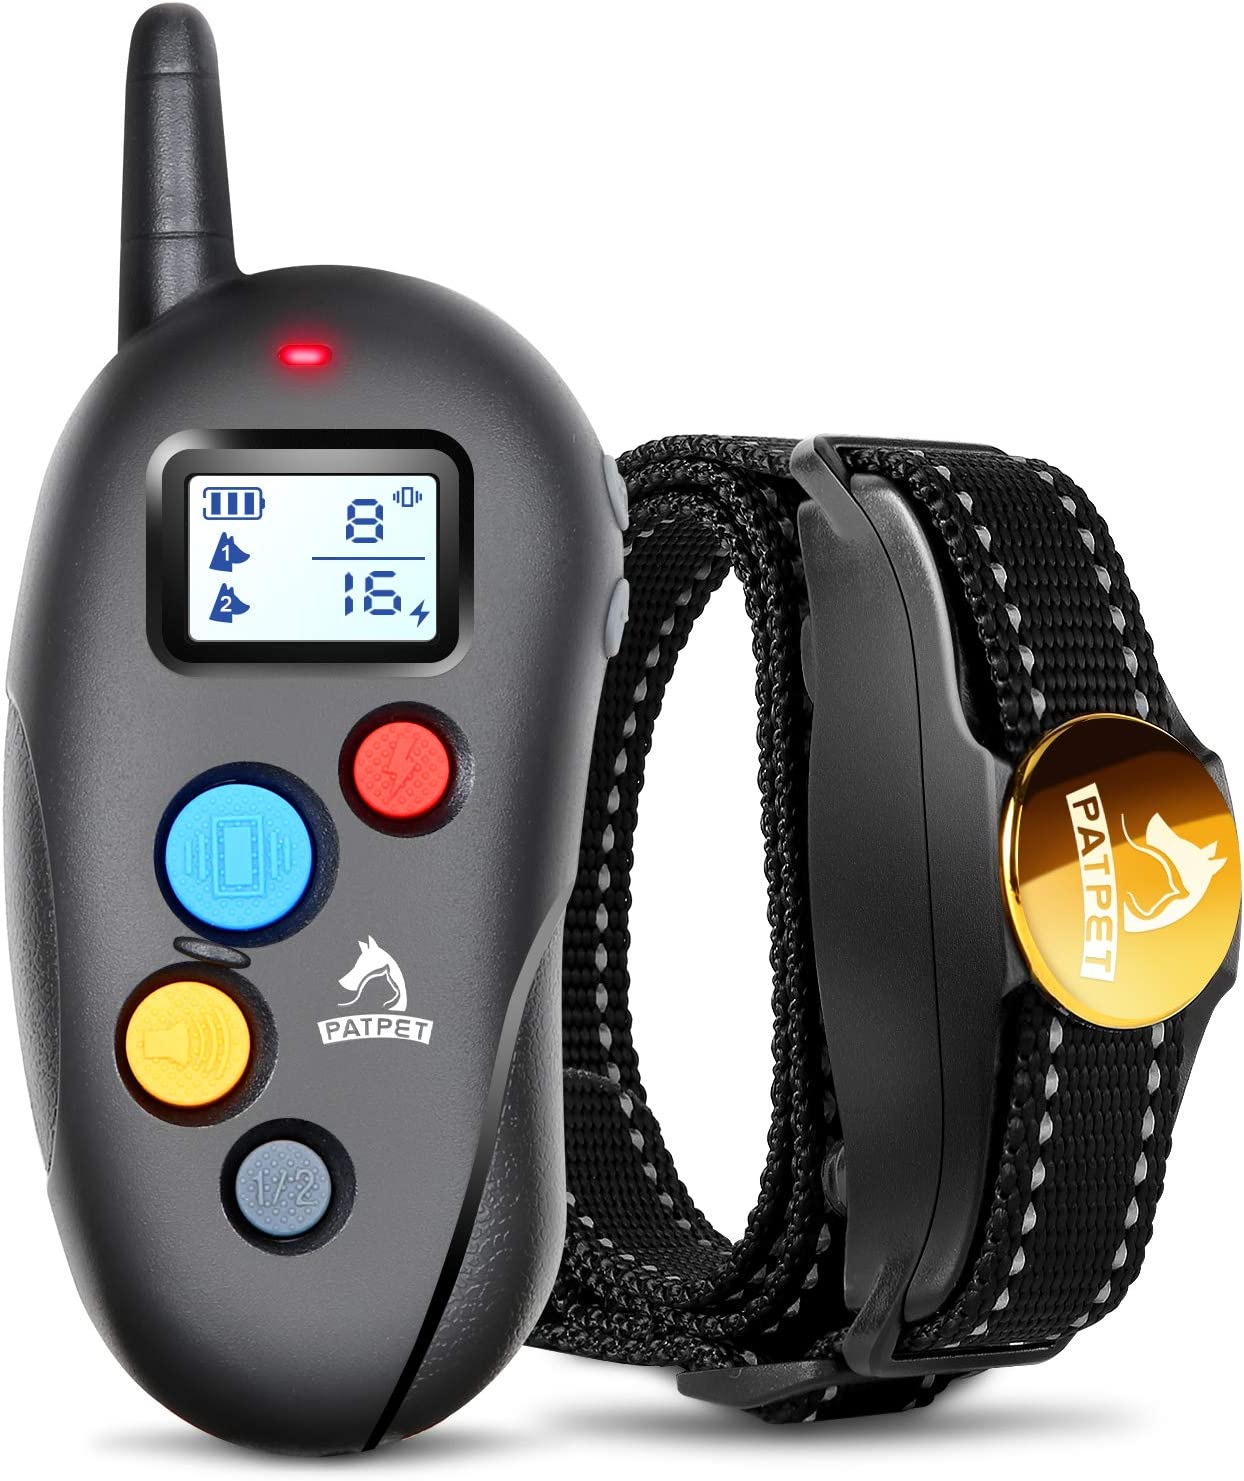 Patpet Dog Training Collar IPX7 Waterproof, Fast rechargeable Shock Collar for Dogs with 1600FT Long Remote Range, 3 Modes Beep Vibration Shock e-Collar for Small Medium Large Dog AC Adapter Included